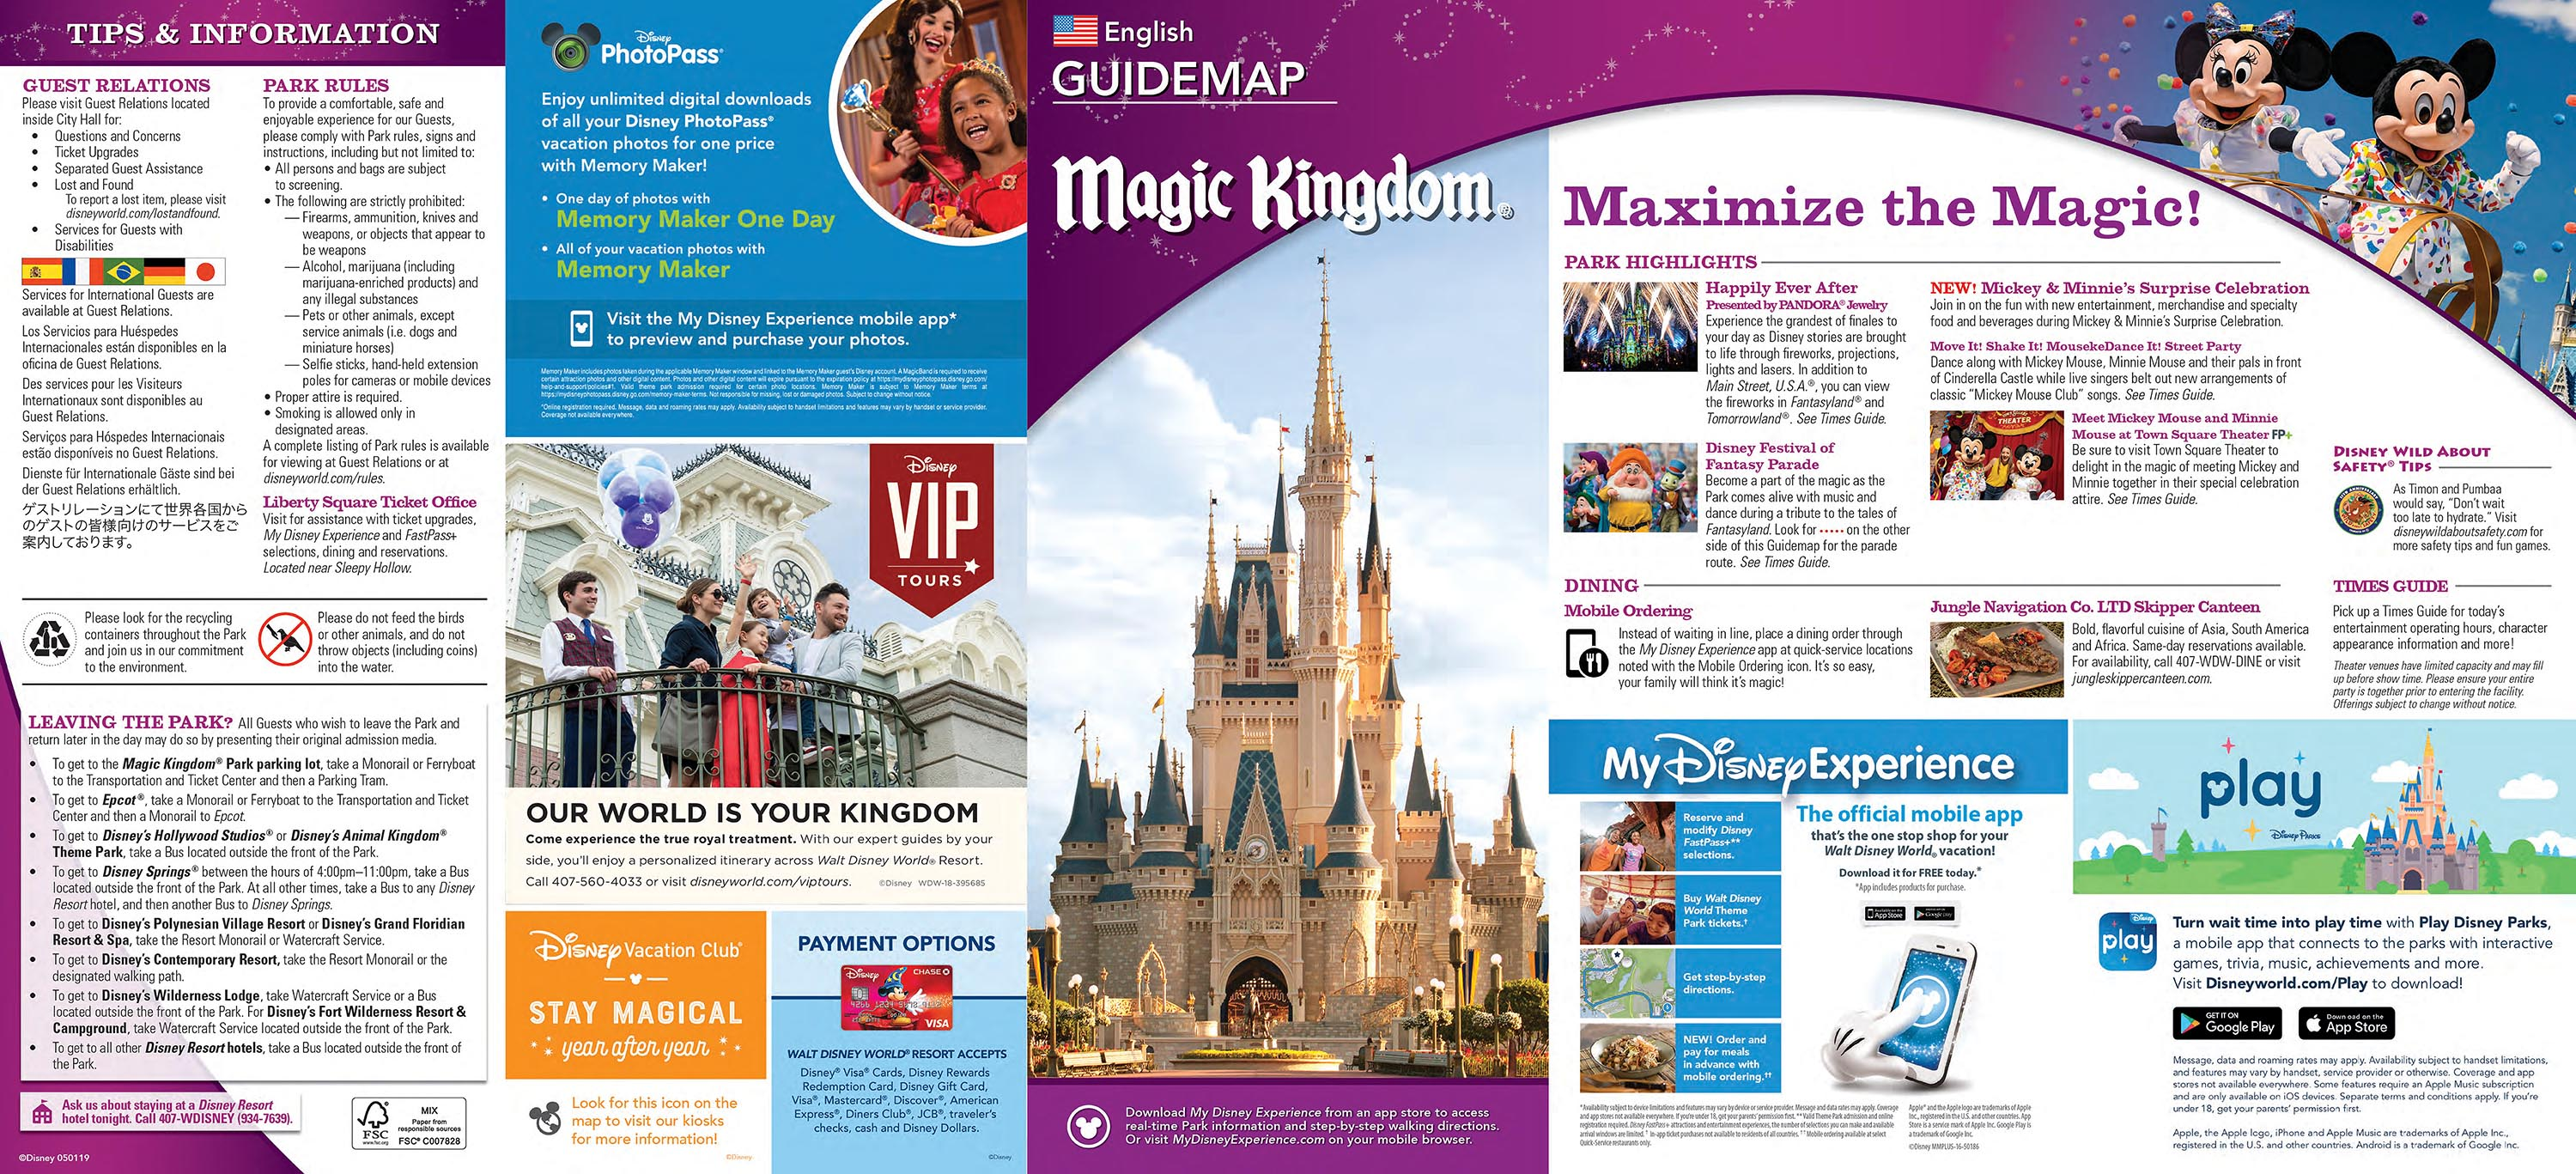 Walt Disney World Park Guide Maps